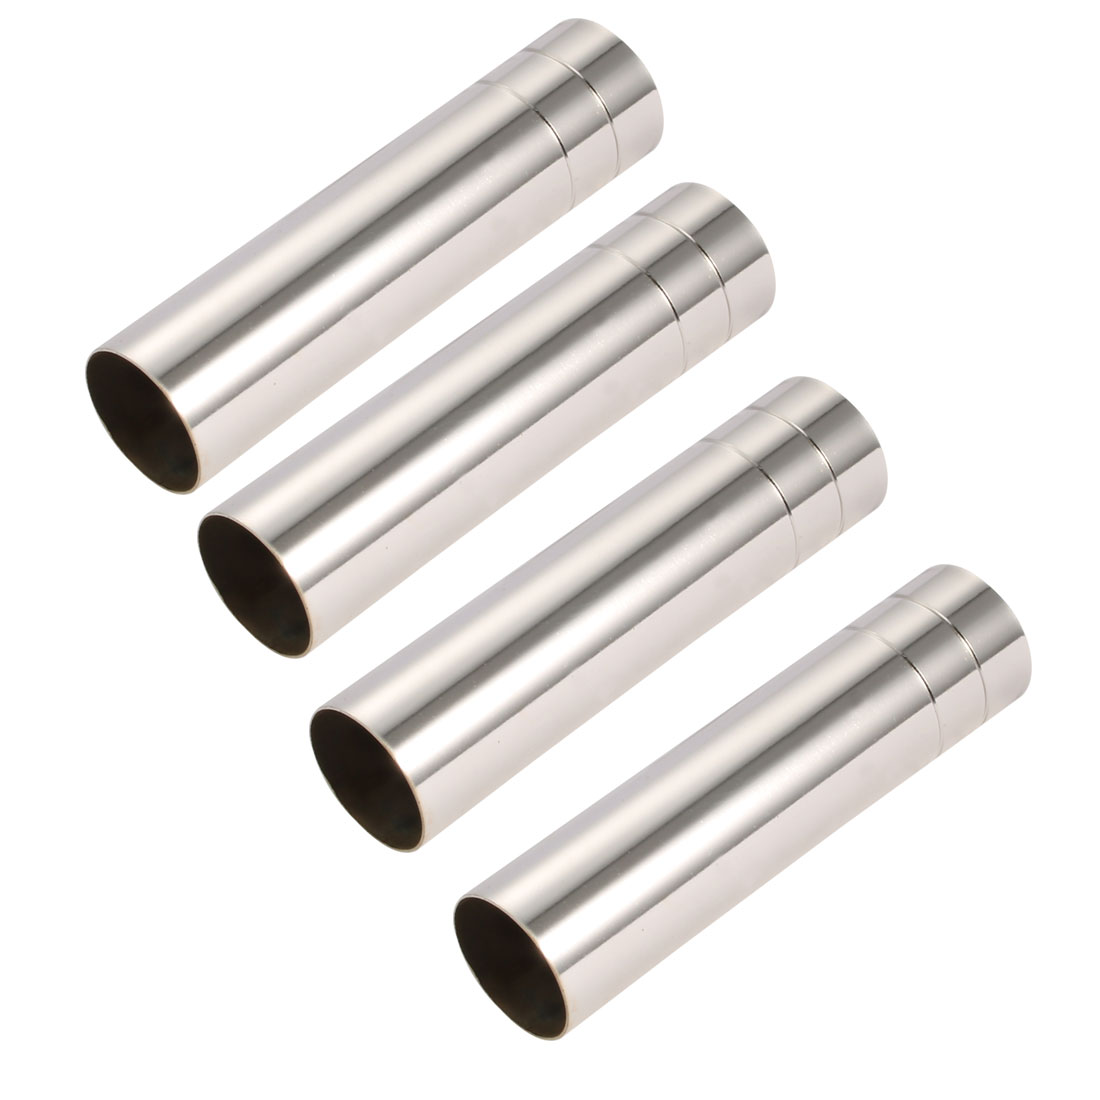 4pcs 25mmx100mm Silver Tone Metal Candle Cover Sleeves Chandelier Socket Covers